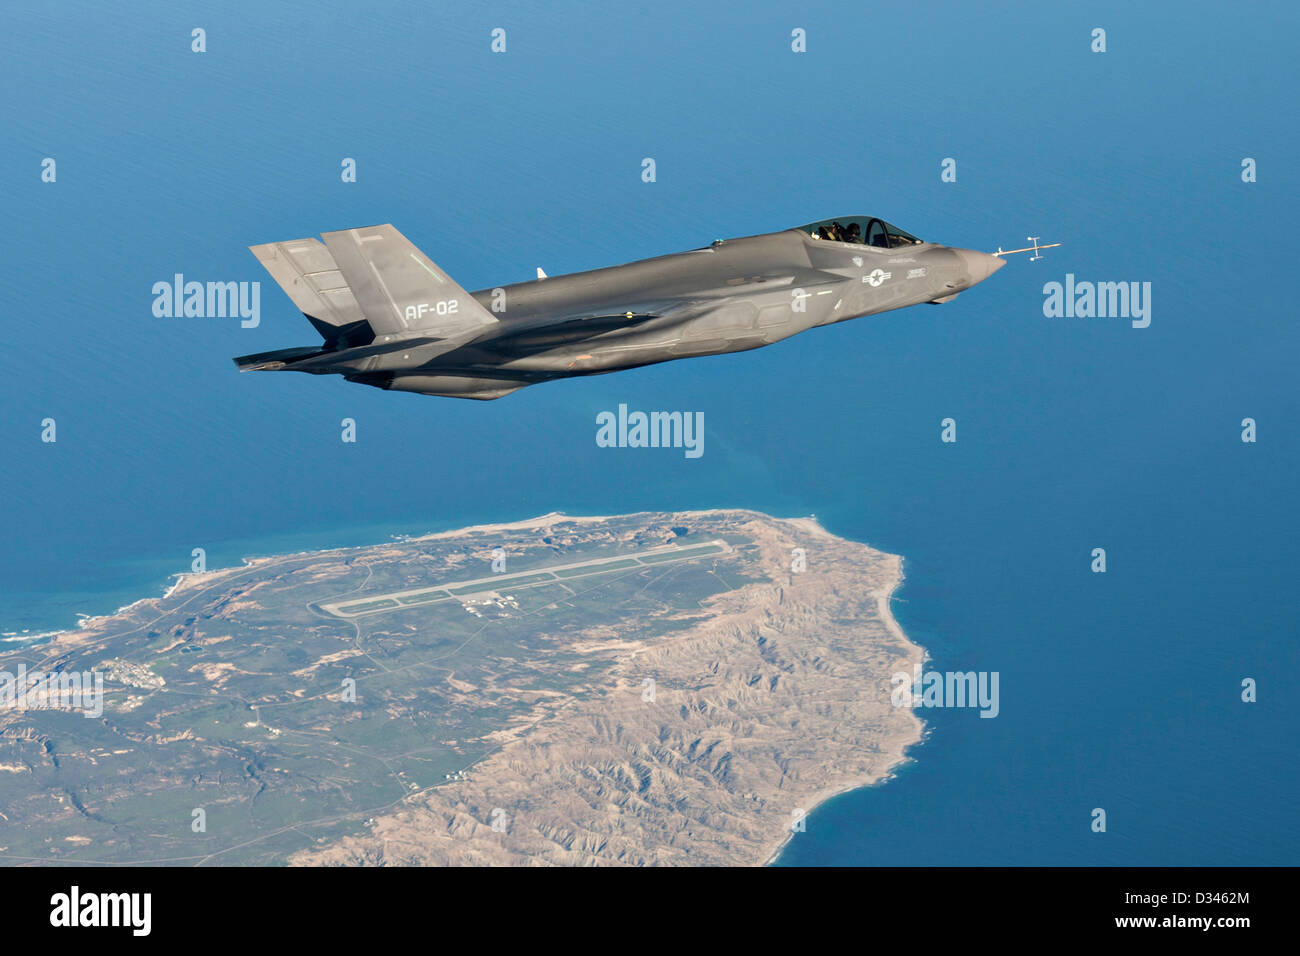 US Air Force F-35 Joint Strike Fighter aircraft December 19, 2012 at Edwards Air Force Base, CA. - Stock Image